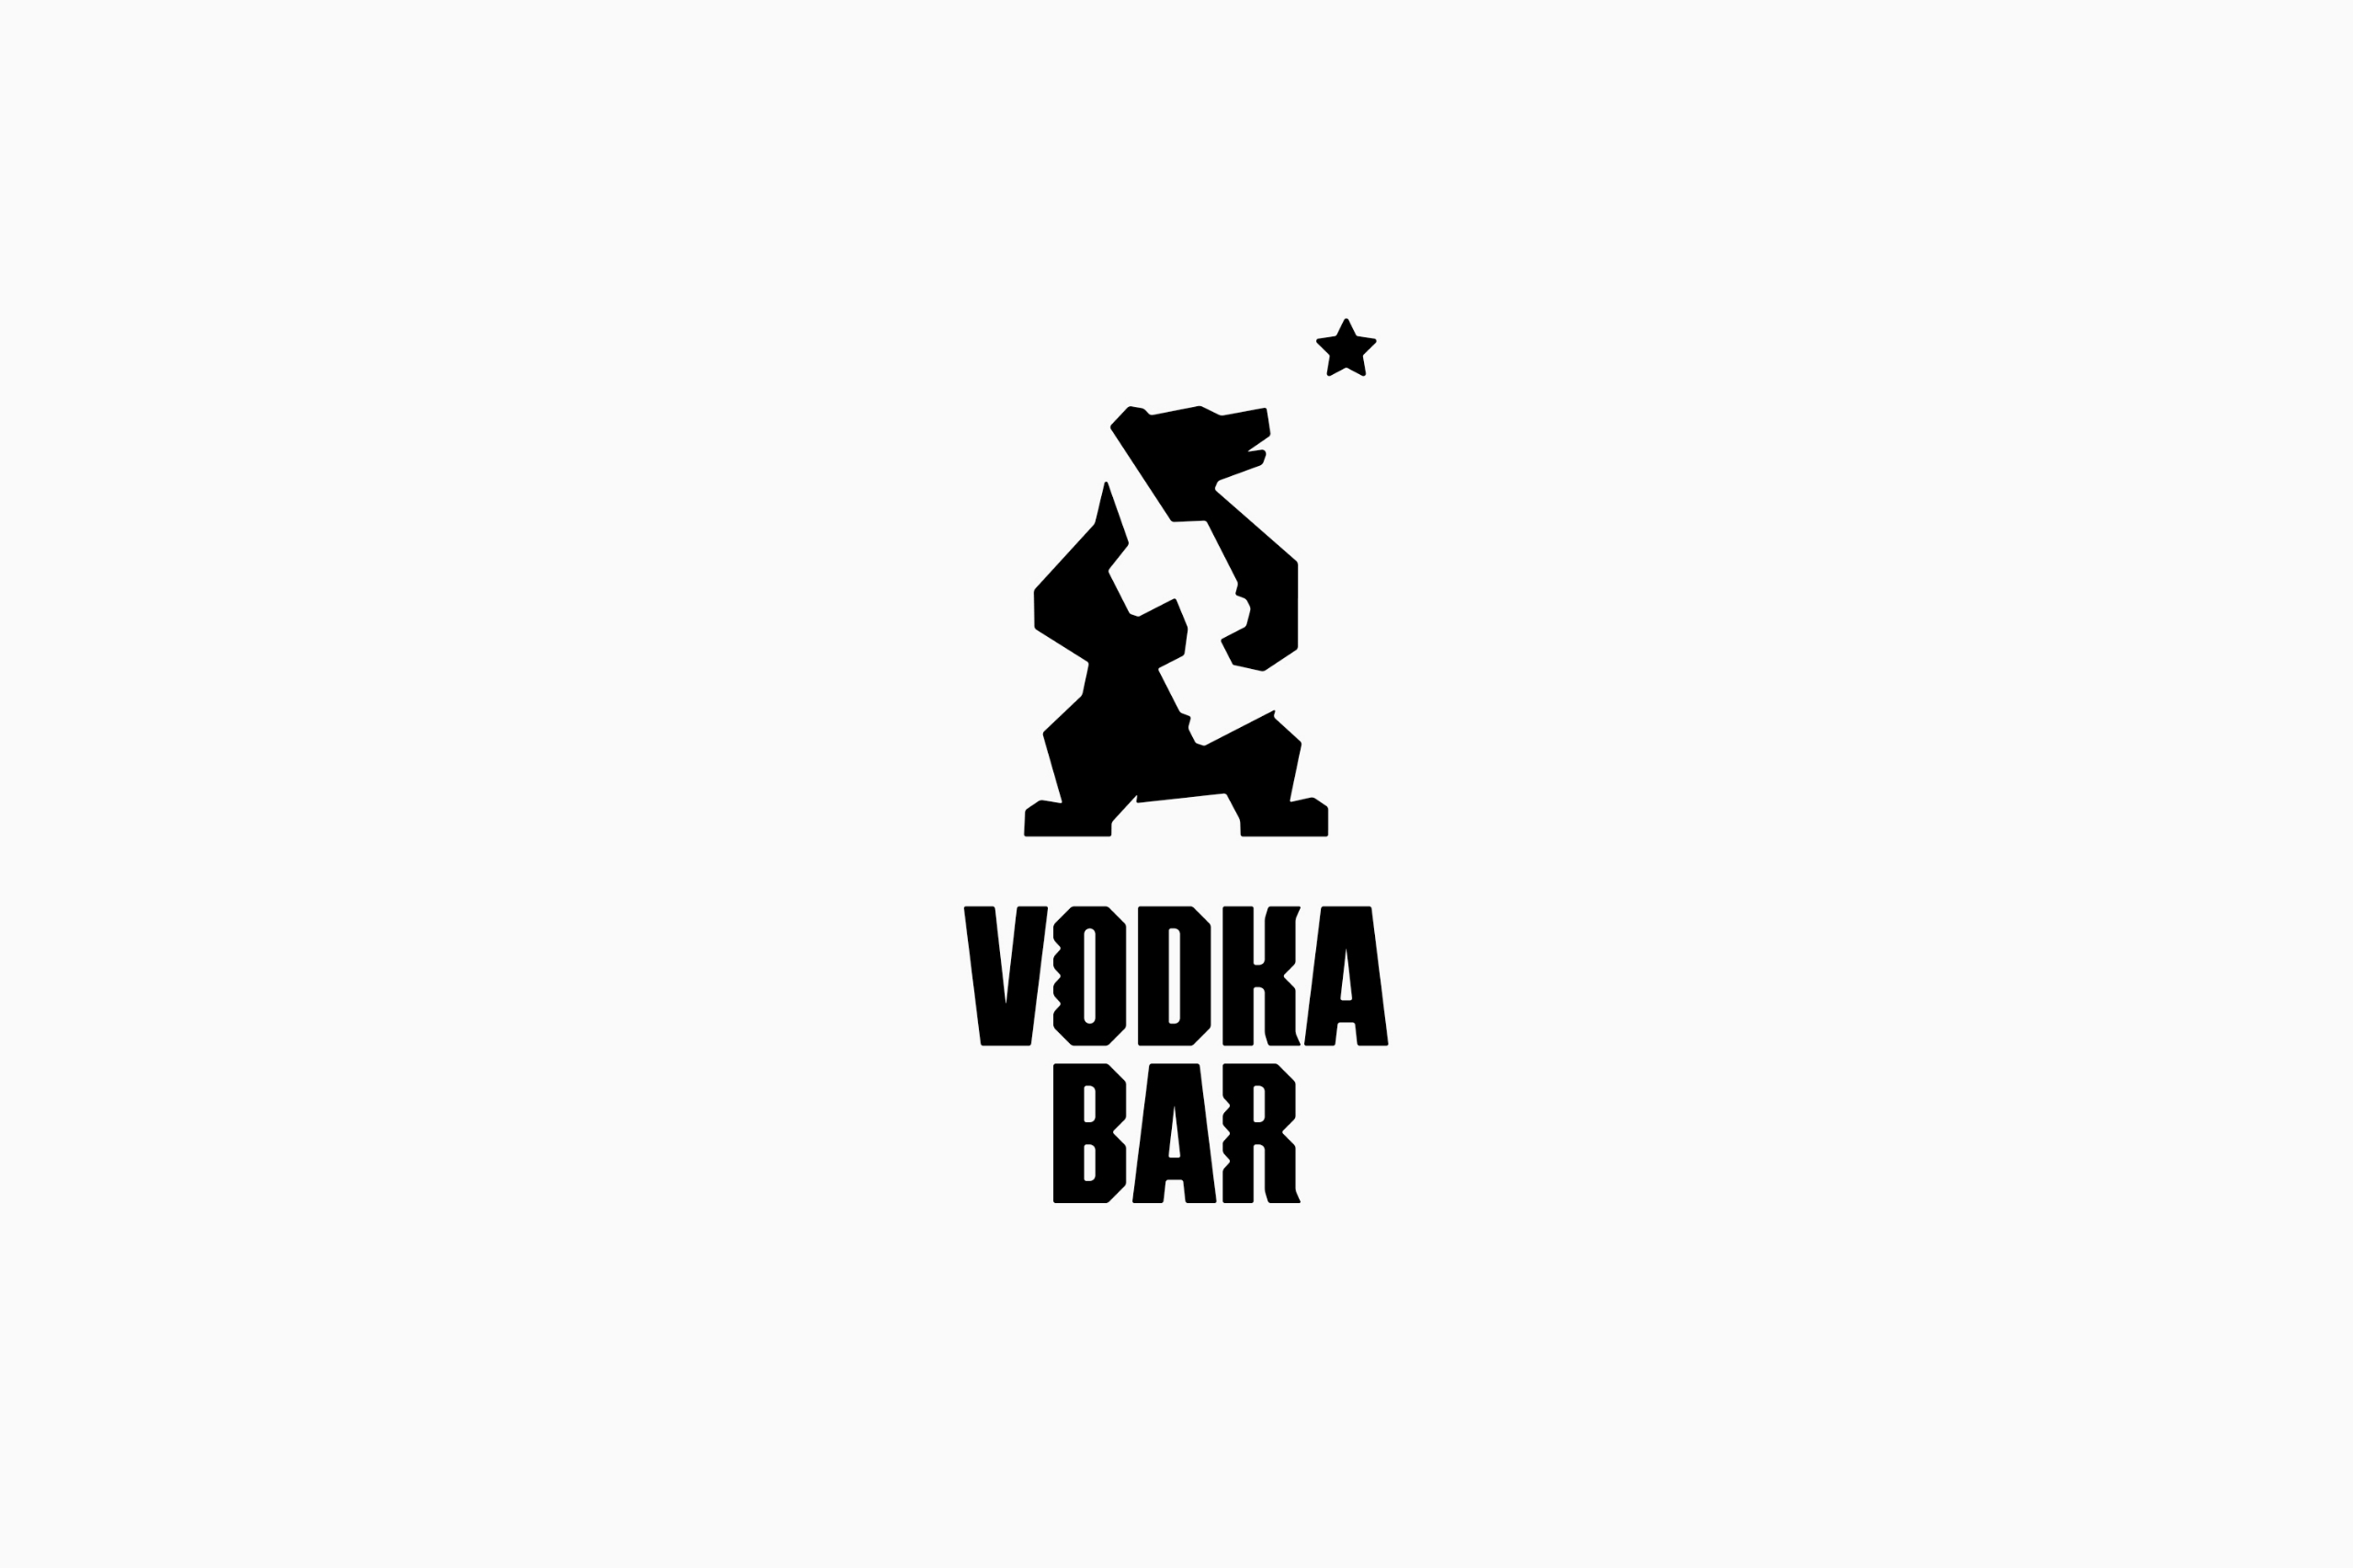 Emblem Vodka Bar - design, logotype - egorkevraletin | ello